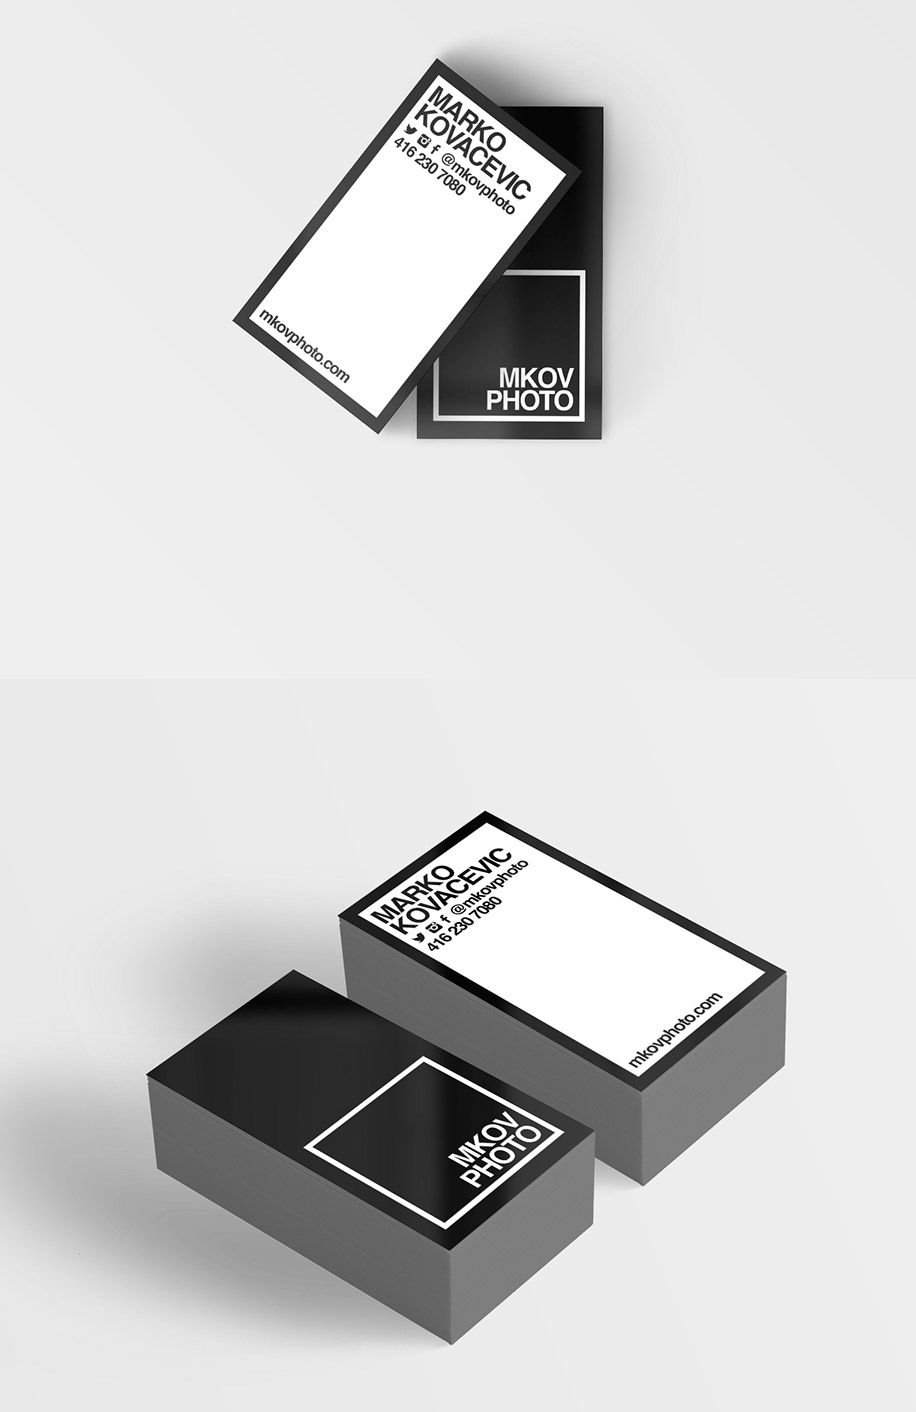 20 minimalistic business card designs for you to see business 20 minimalistic business card designs for you to see magicingreecefo Choice Image